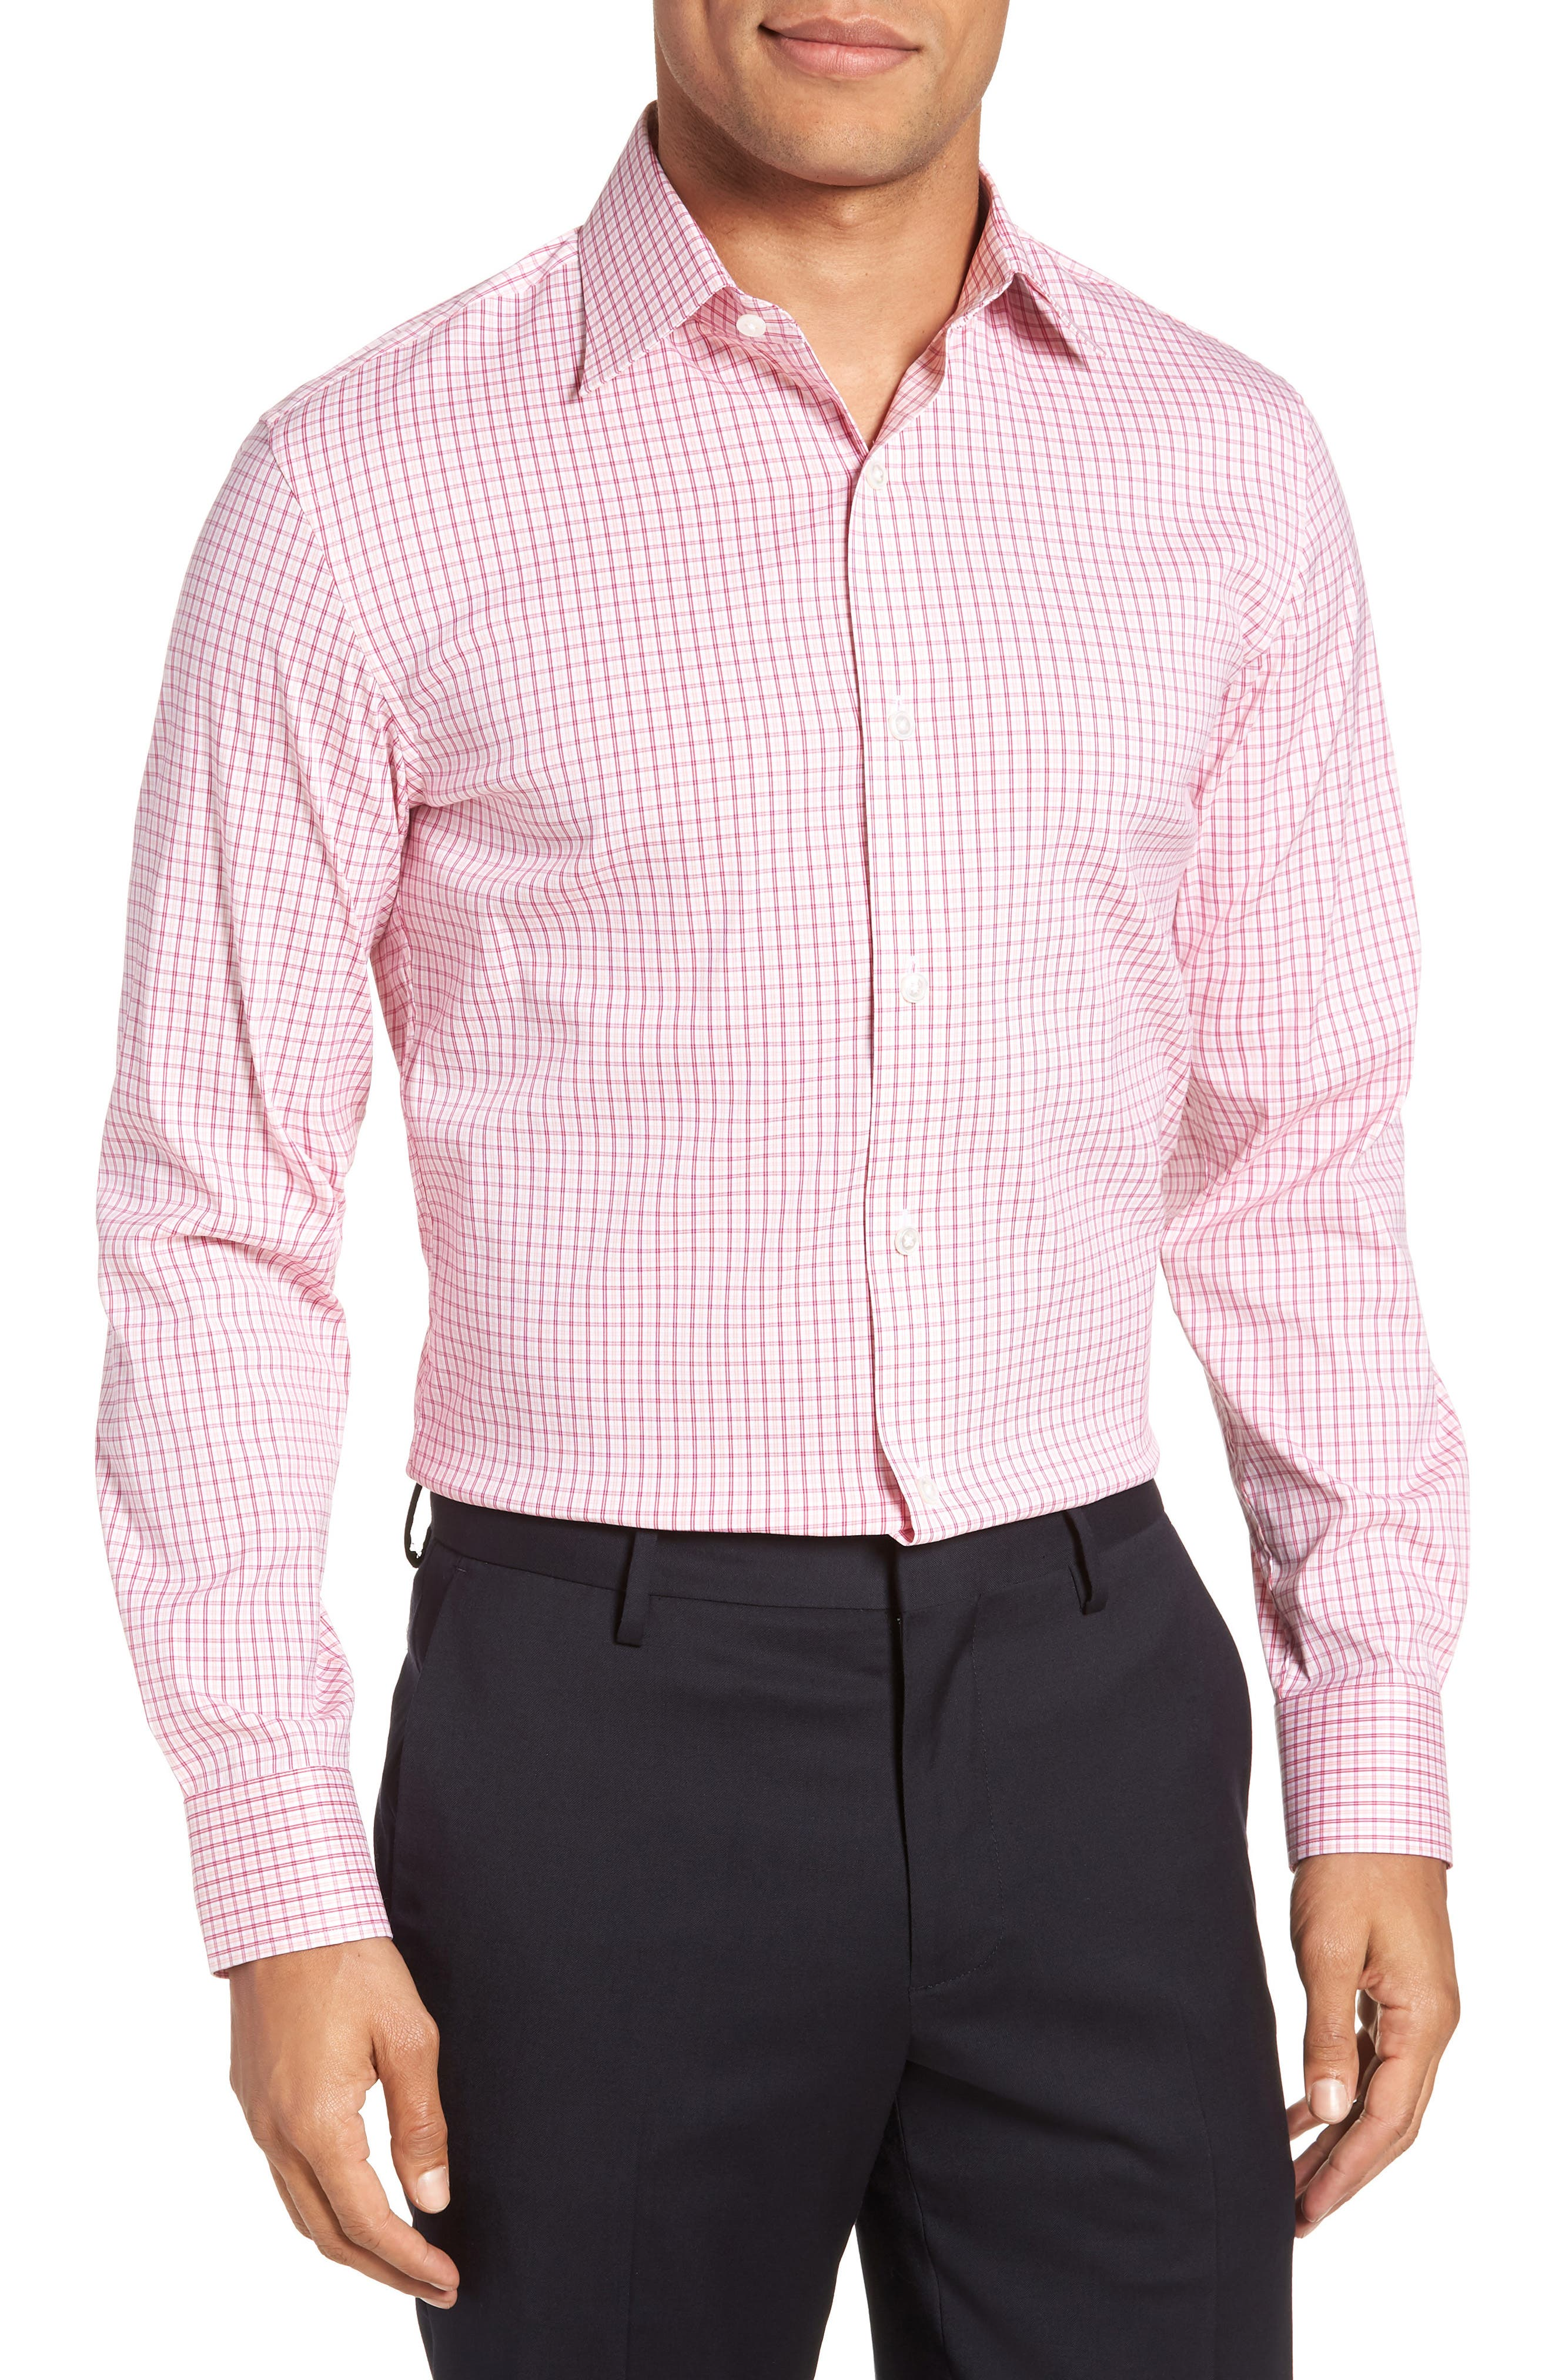 Jetsetter Slim Fit Stretch Check Dress Shirt,                         Main,                         color, Pink Peacock